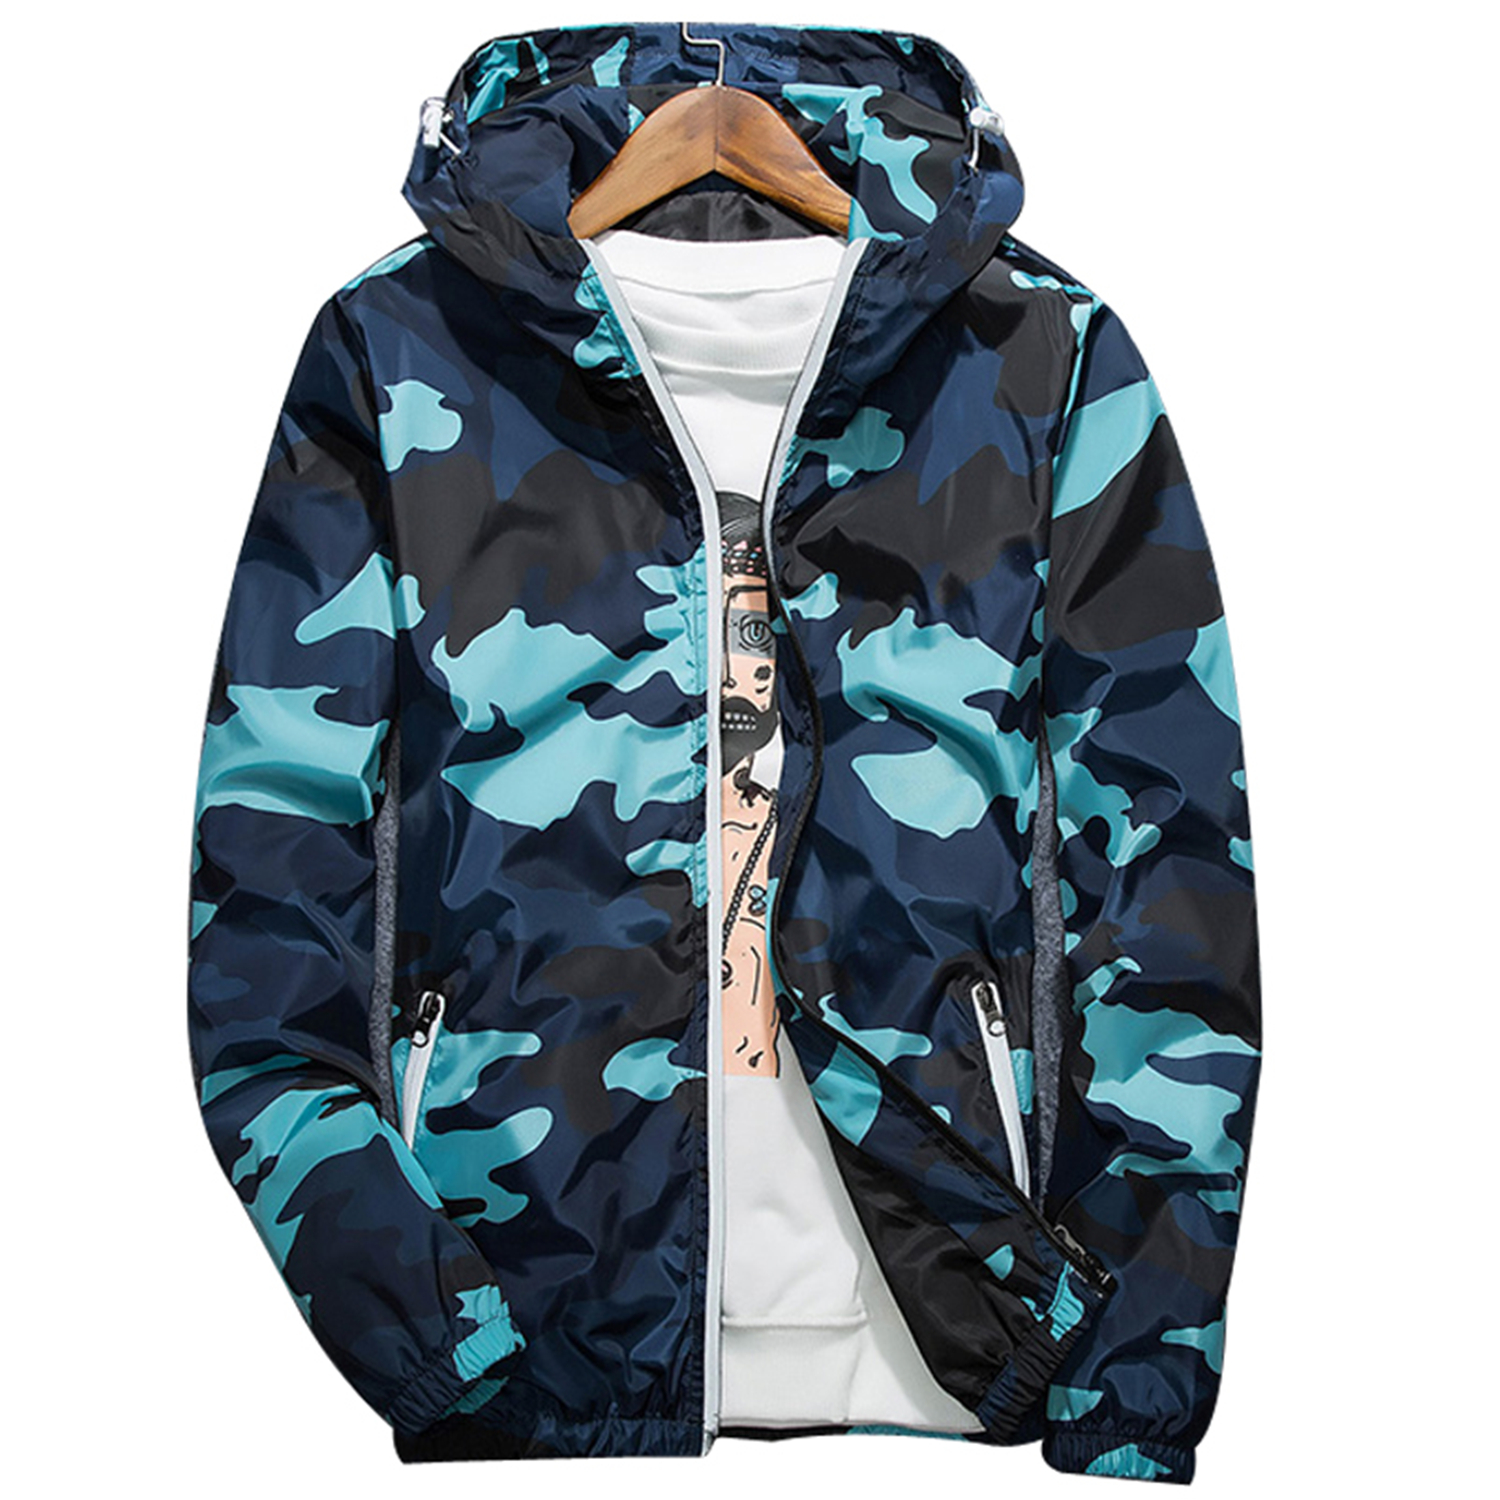 220e6597386a3 coach jacket camo, coach jacket camo Suppliers and Manufacturers at  Alibaba.com